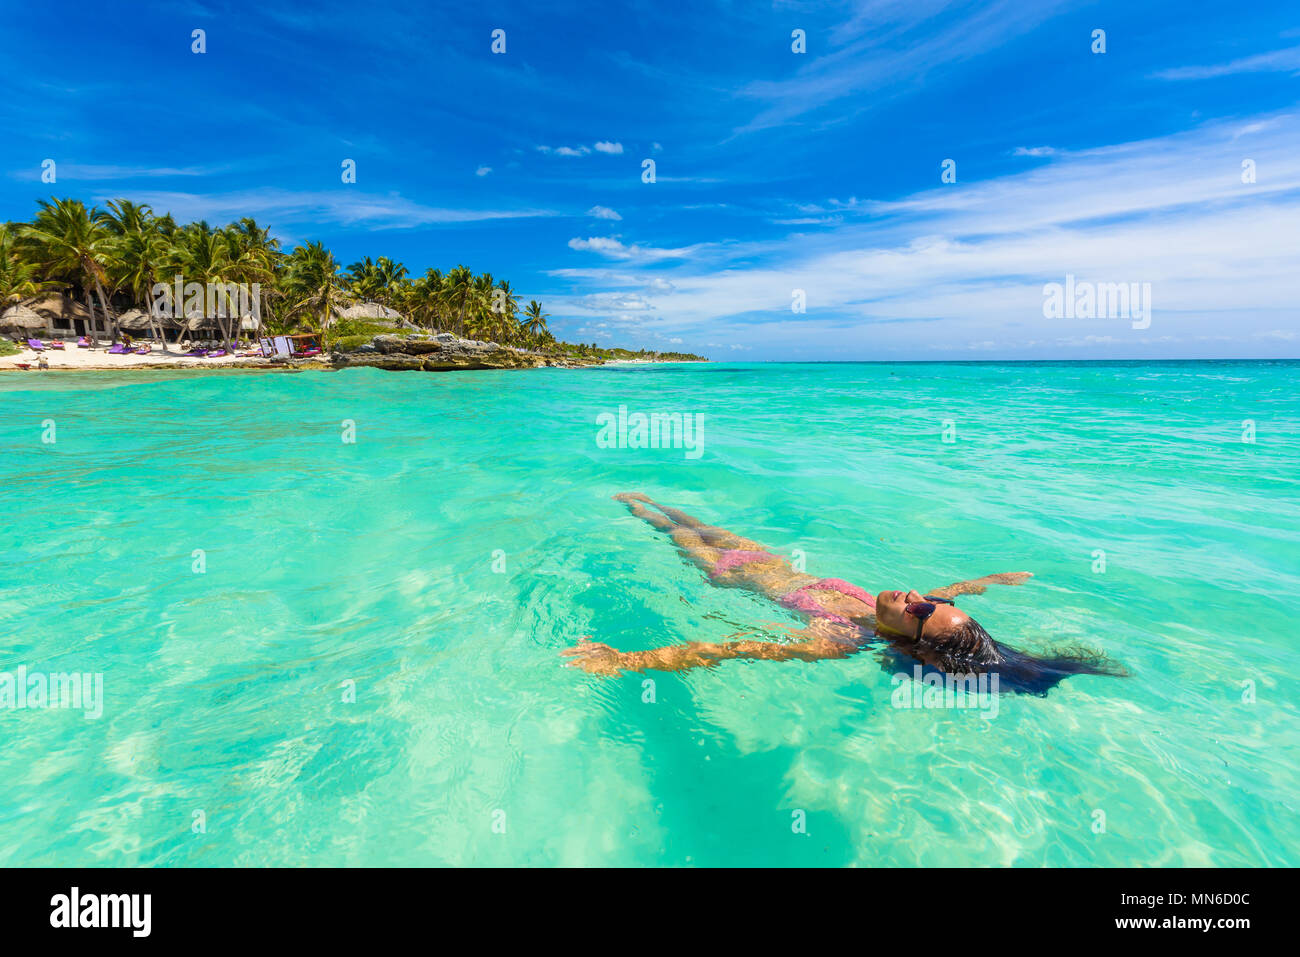 Caribbean Relaxation: Girl In Cancun Stock Photos & Girl In Cancun Stock Images